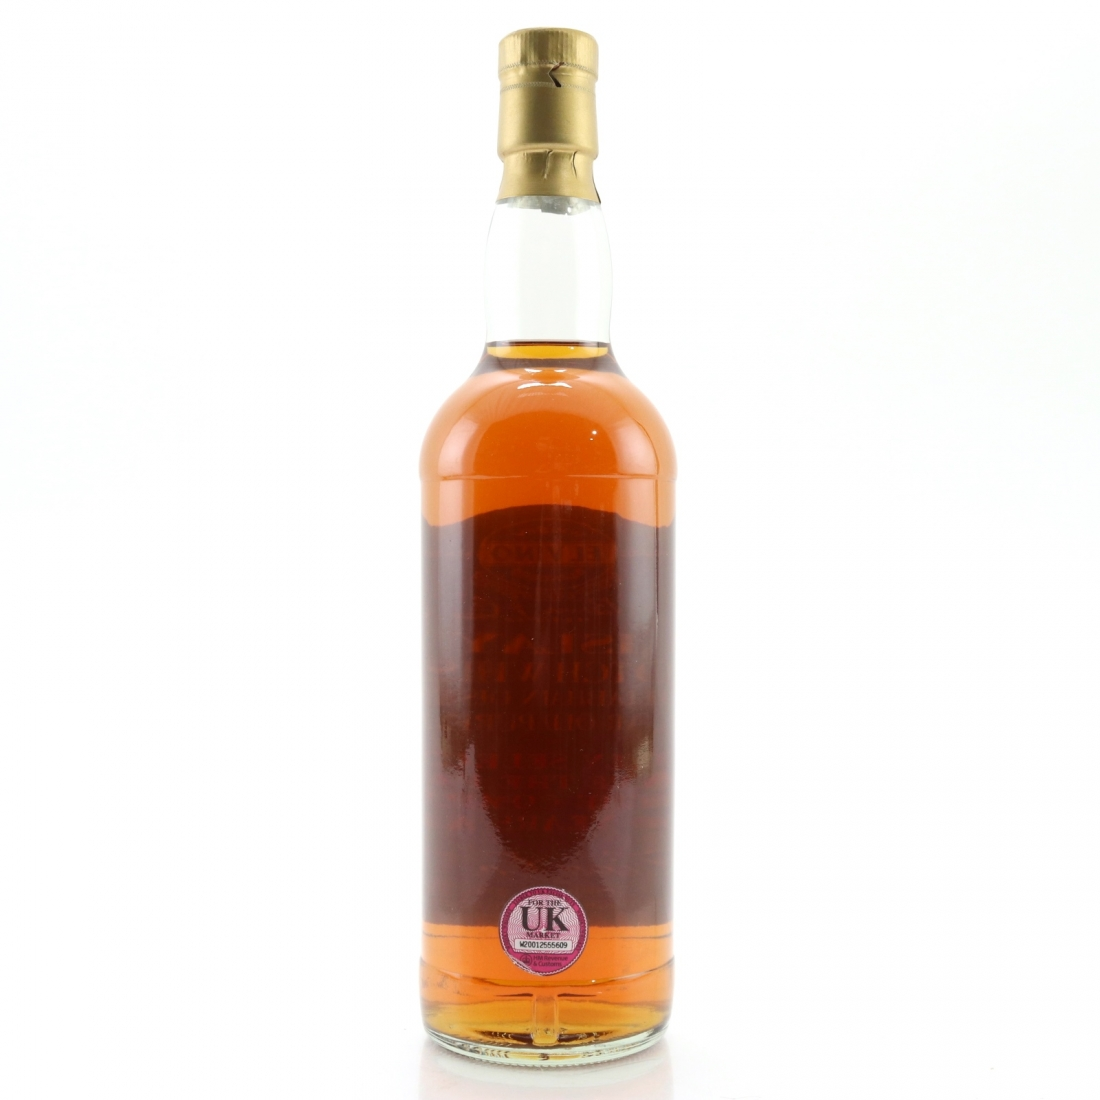 Bunnahabhain 20 Year Old / 130th Anniversary of El Vino